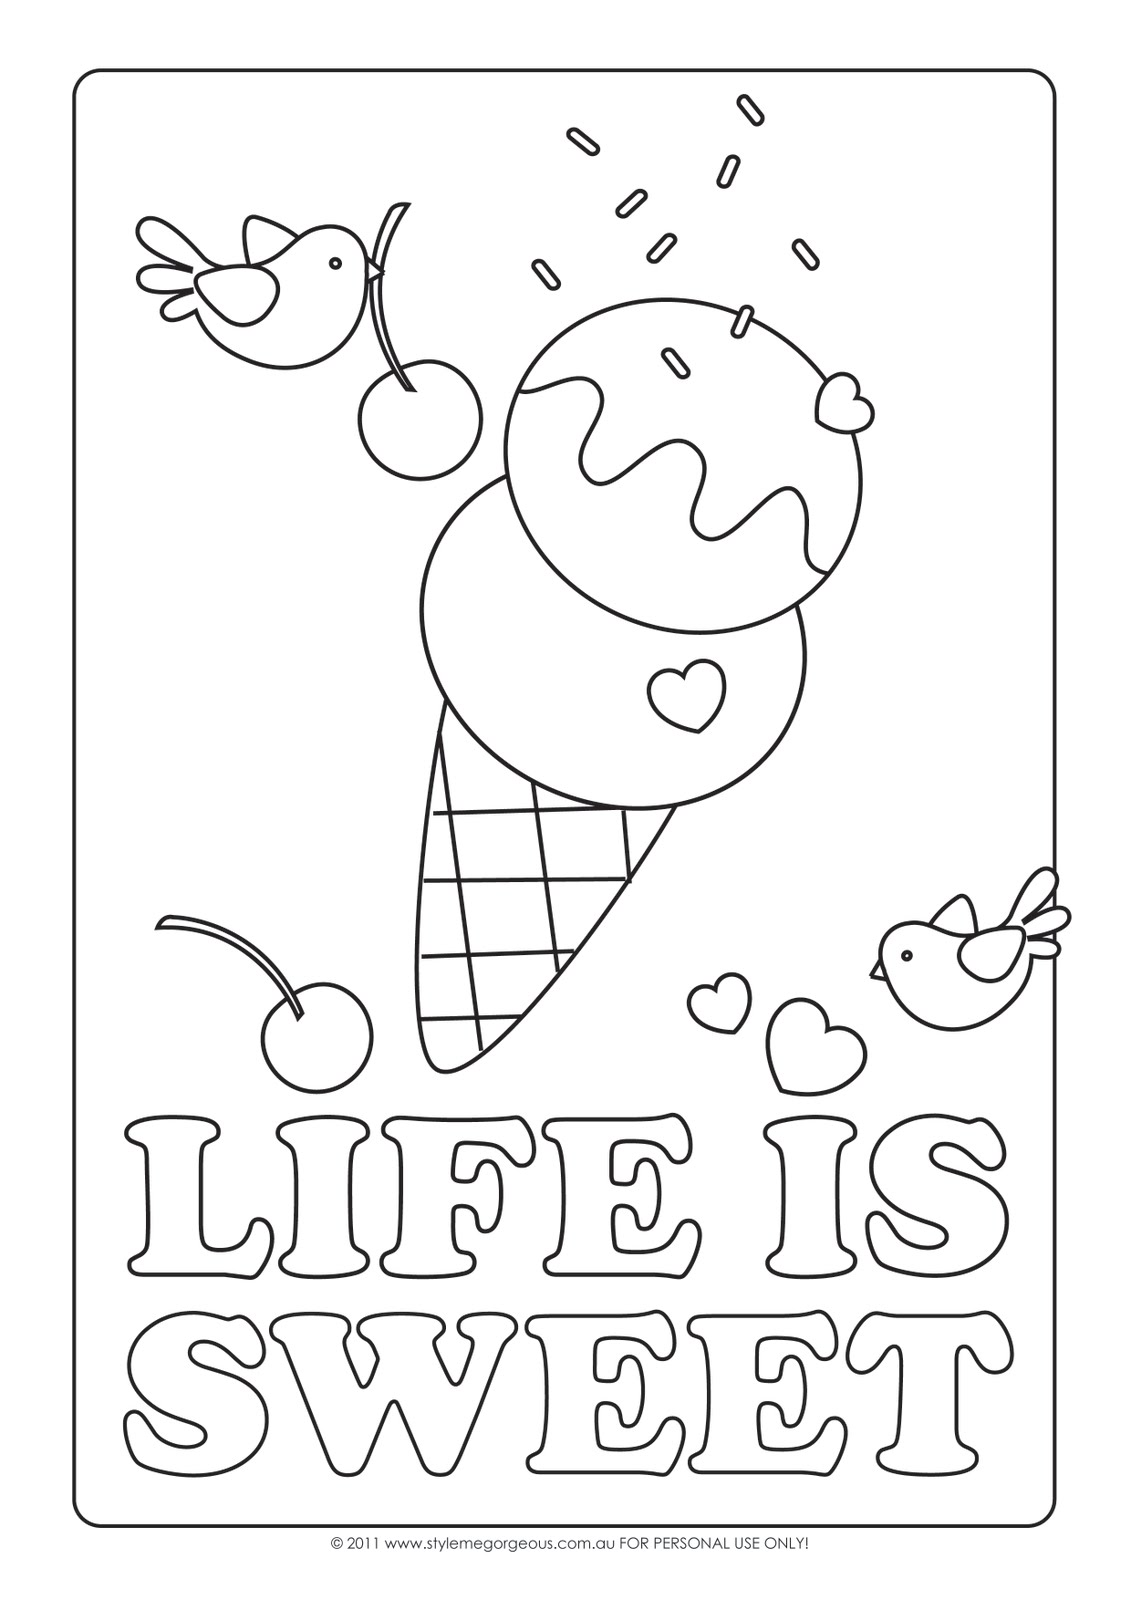 Coloring pictures of ice cream cones - Ice Cream Cone